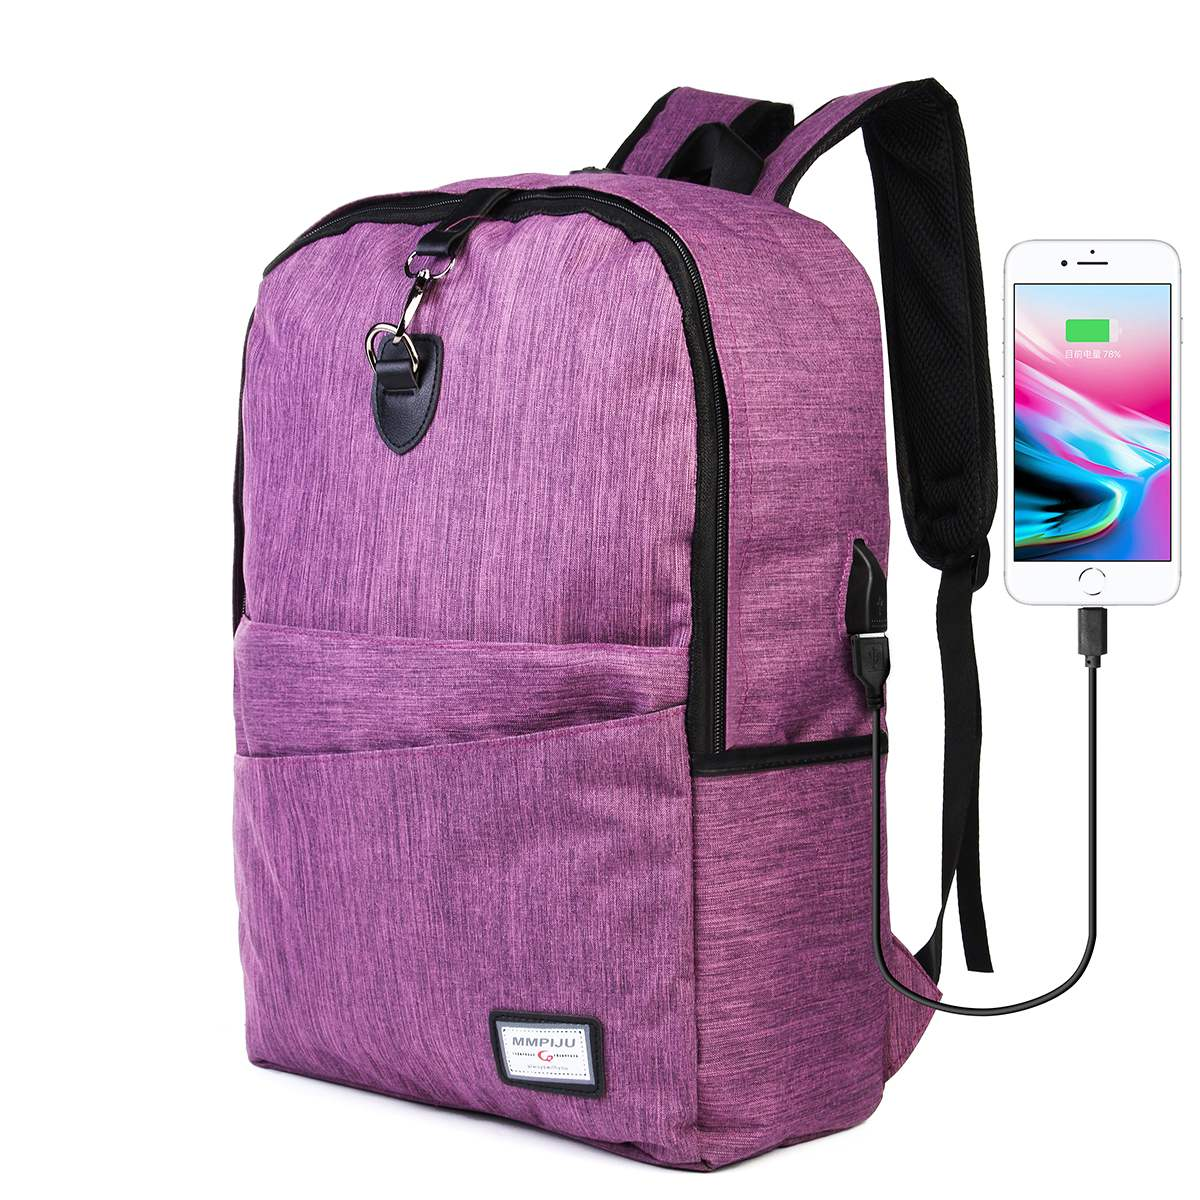 Colored Antitheft Backpack With USB Charge Port Lightweight Women Men Laptop School College Bag 2018 New Built in Hidden Zipper ...